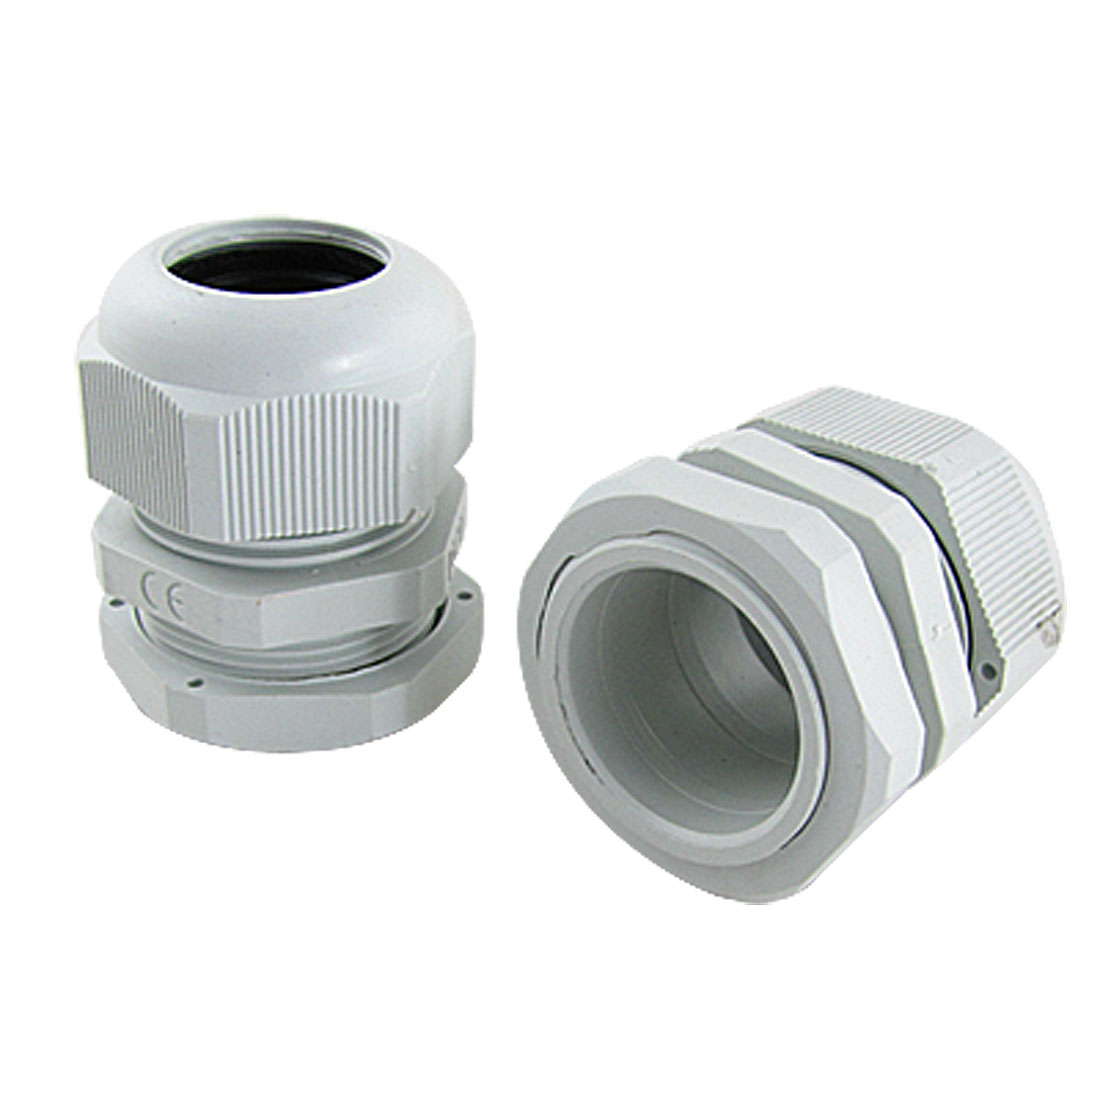 2 Pcs Waterproof M32 White Plastic Glands Connectors for 16-21mm Cables